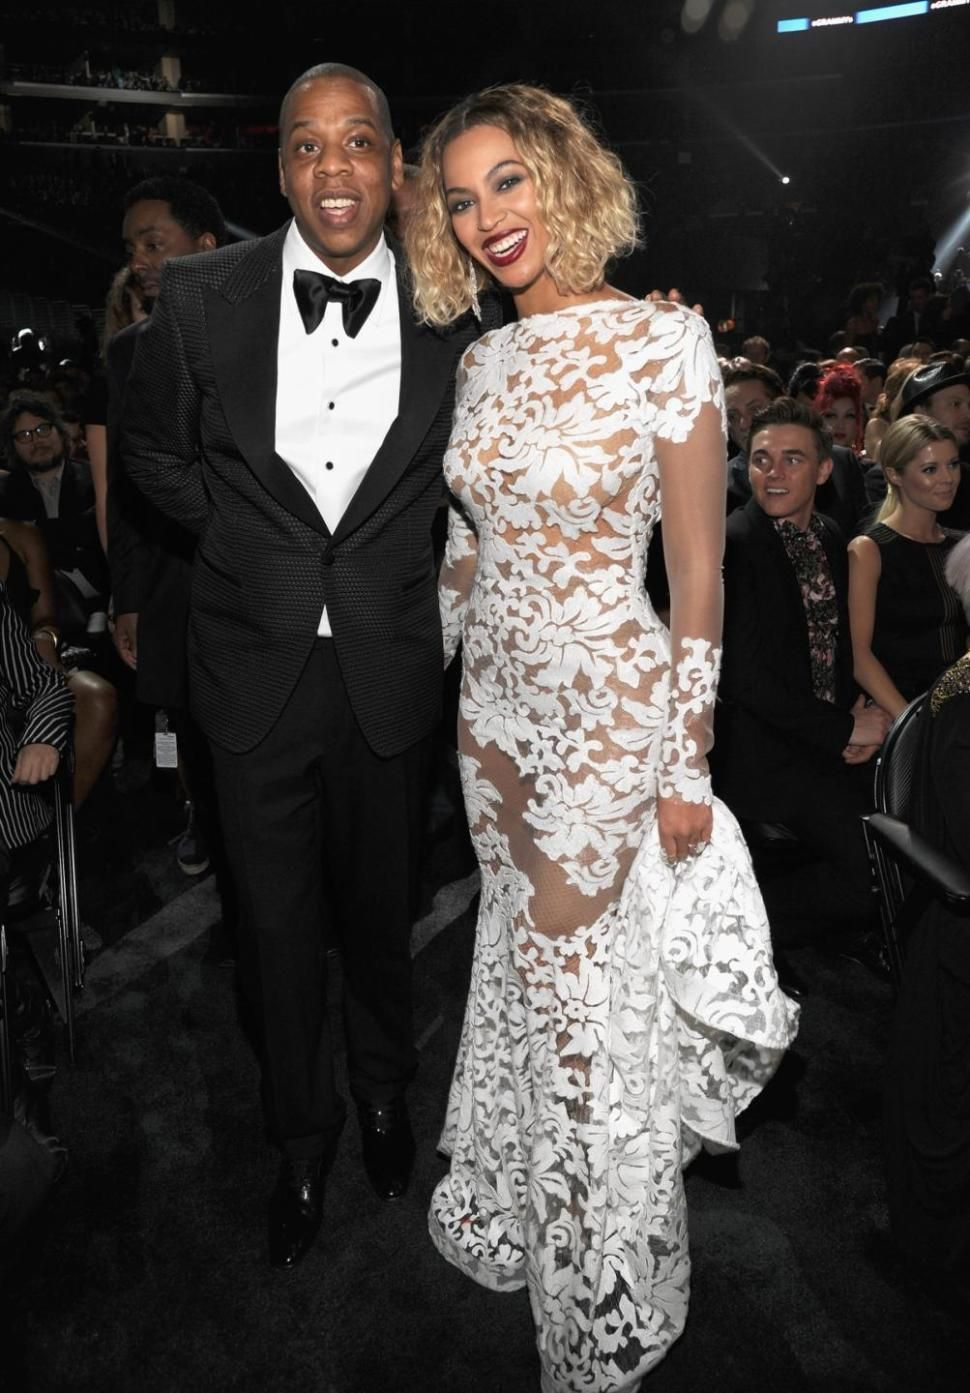 The Pair Are Believed To Have Sparked Their Relationship After They Collaborated On 03 Bonnie And Clyde In 2002